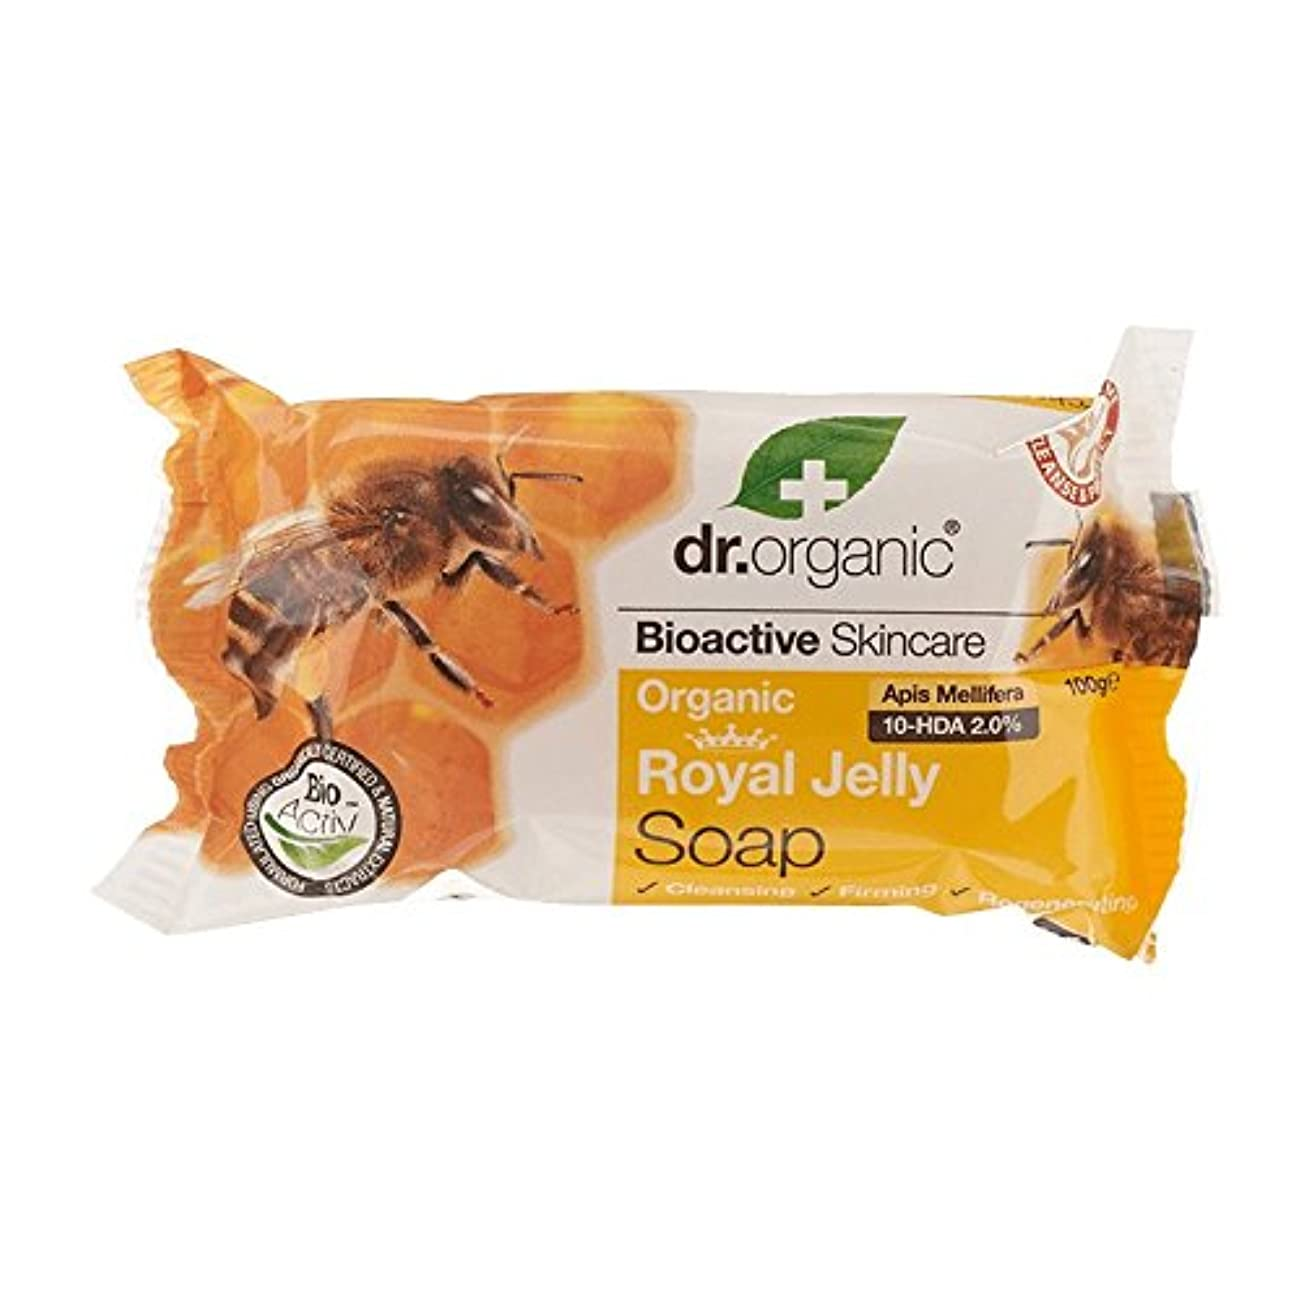 Dr Organic Royal Jelly Soap (Pack of 6) - Dr有機ローヤルゼリーソープ (x6) [並行輸入品]